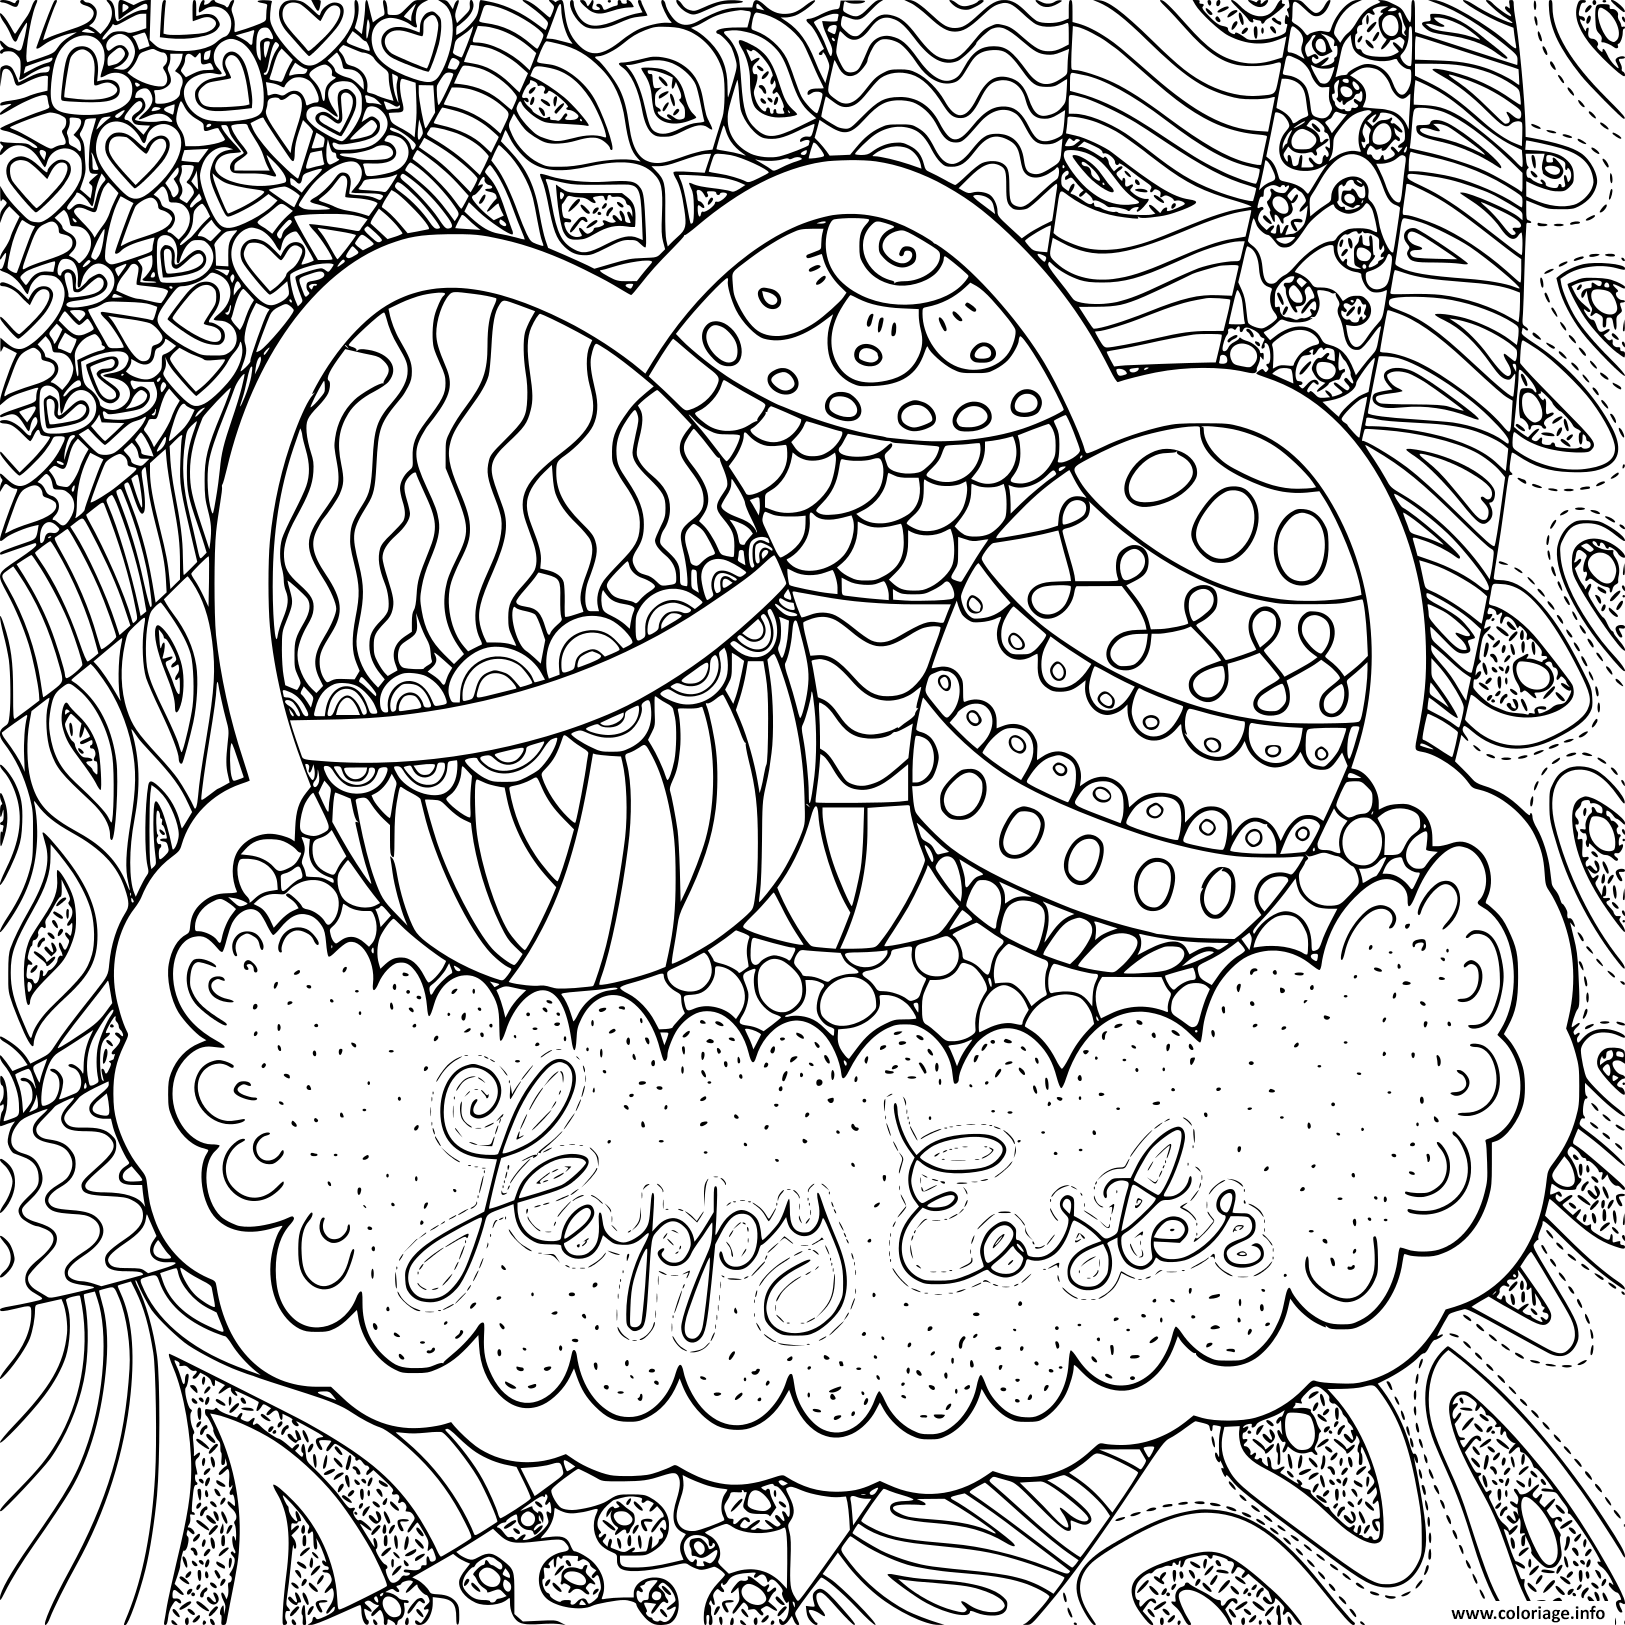 Coloriage Adulte Paques.Coloriage Adulte Paques Pattern Easter Jecolorie Com